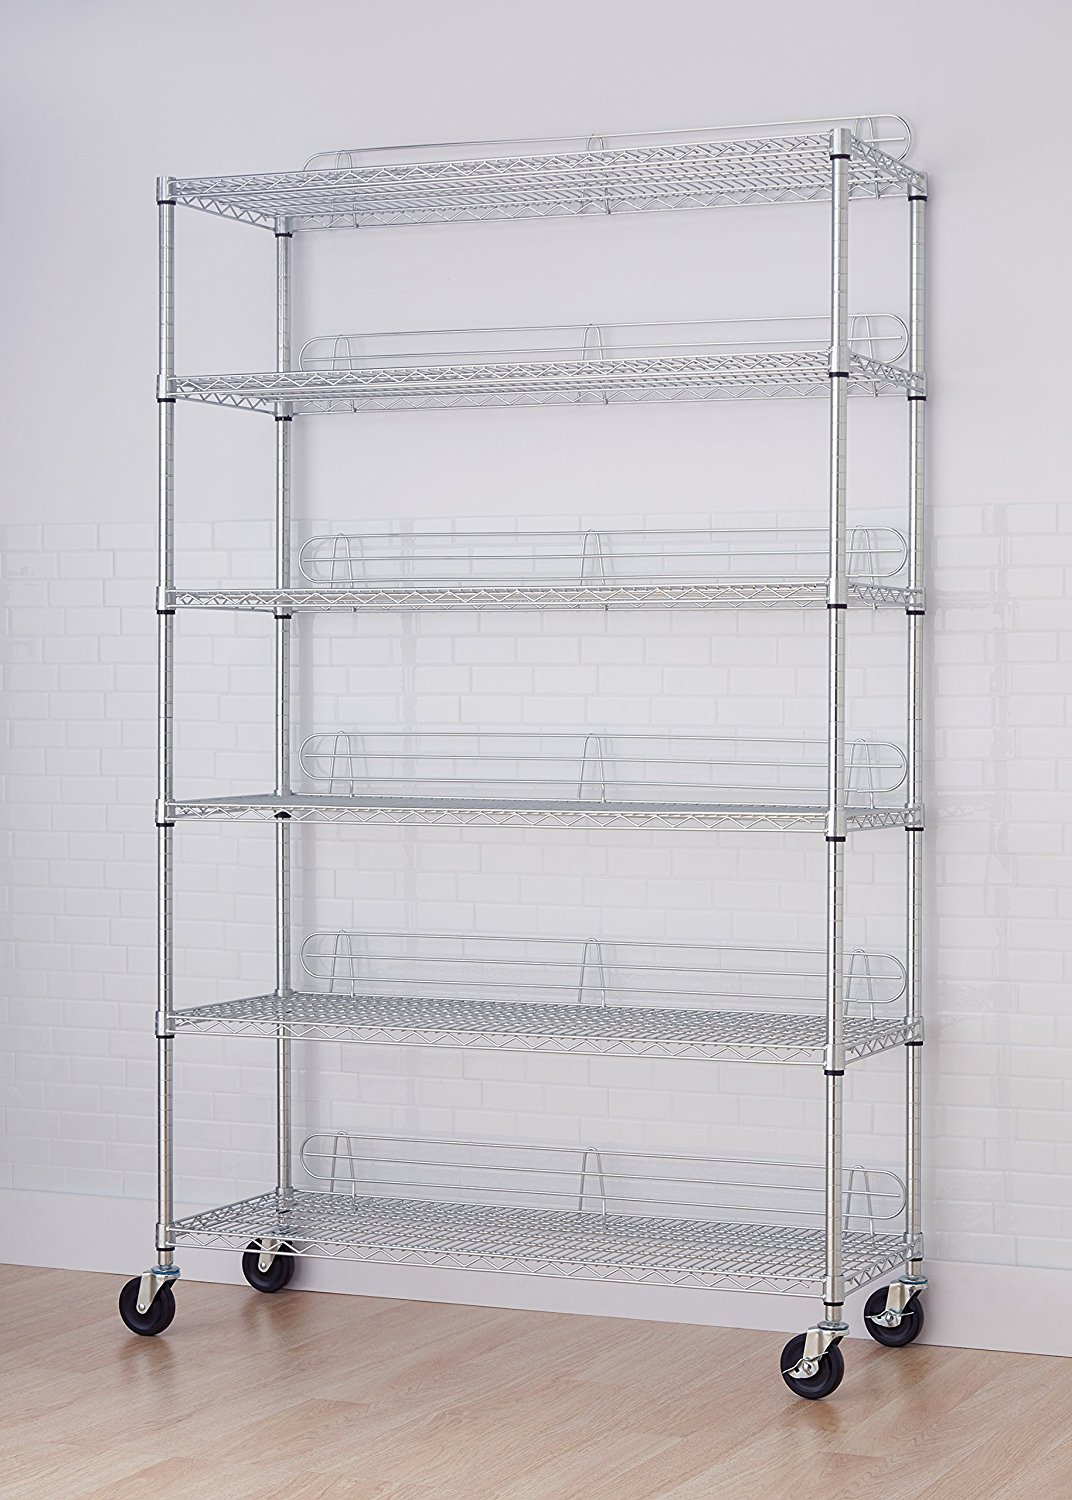 Incroyable TRINITY EcoStorage 6 Tier NSF Wire Shelving Rack With Wheels   Chrome ...